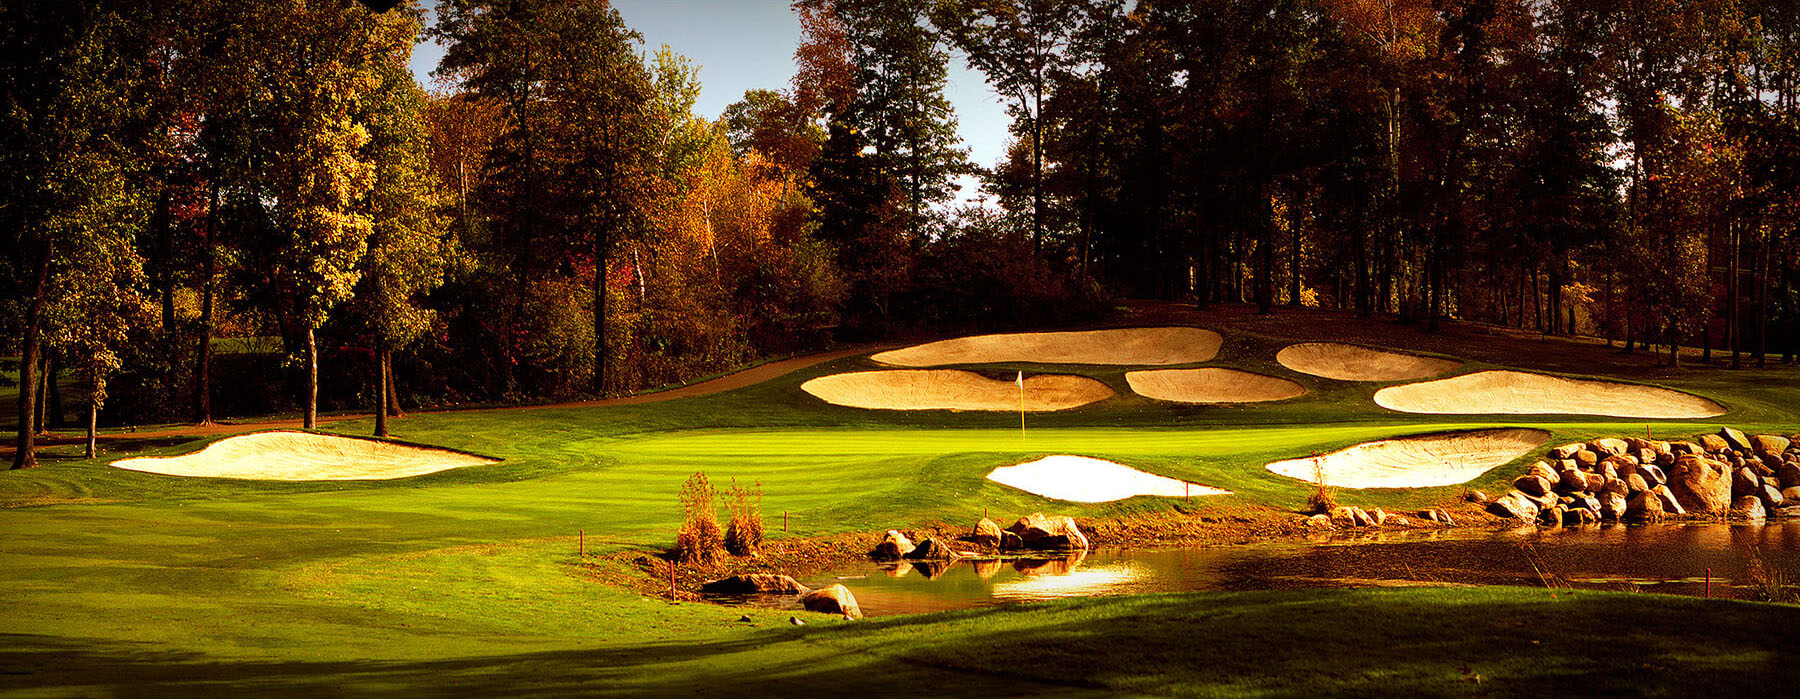 The Classic Tour Hole 1 at Madden's Resort in Minnesota